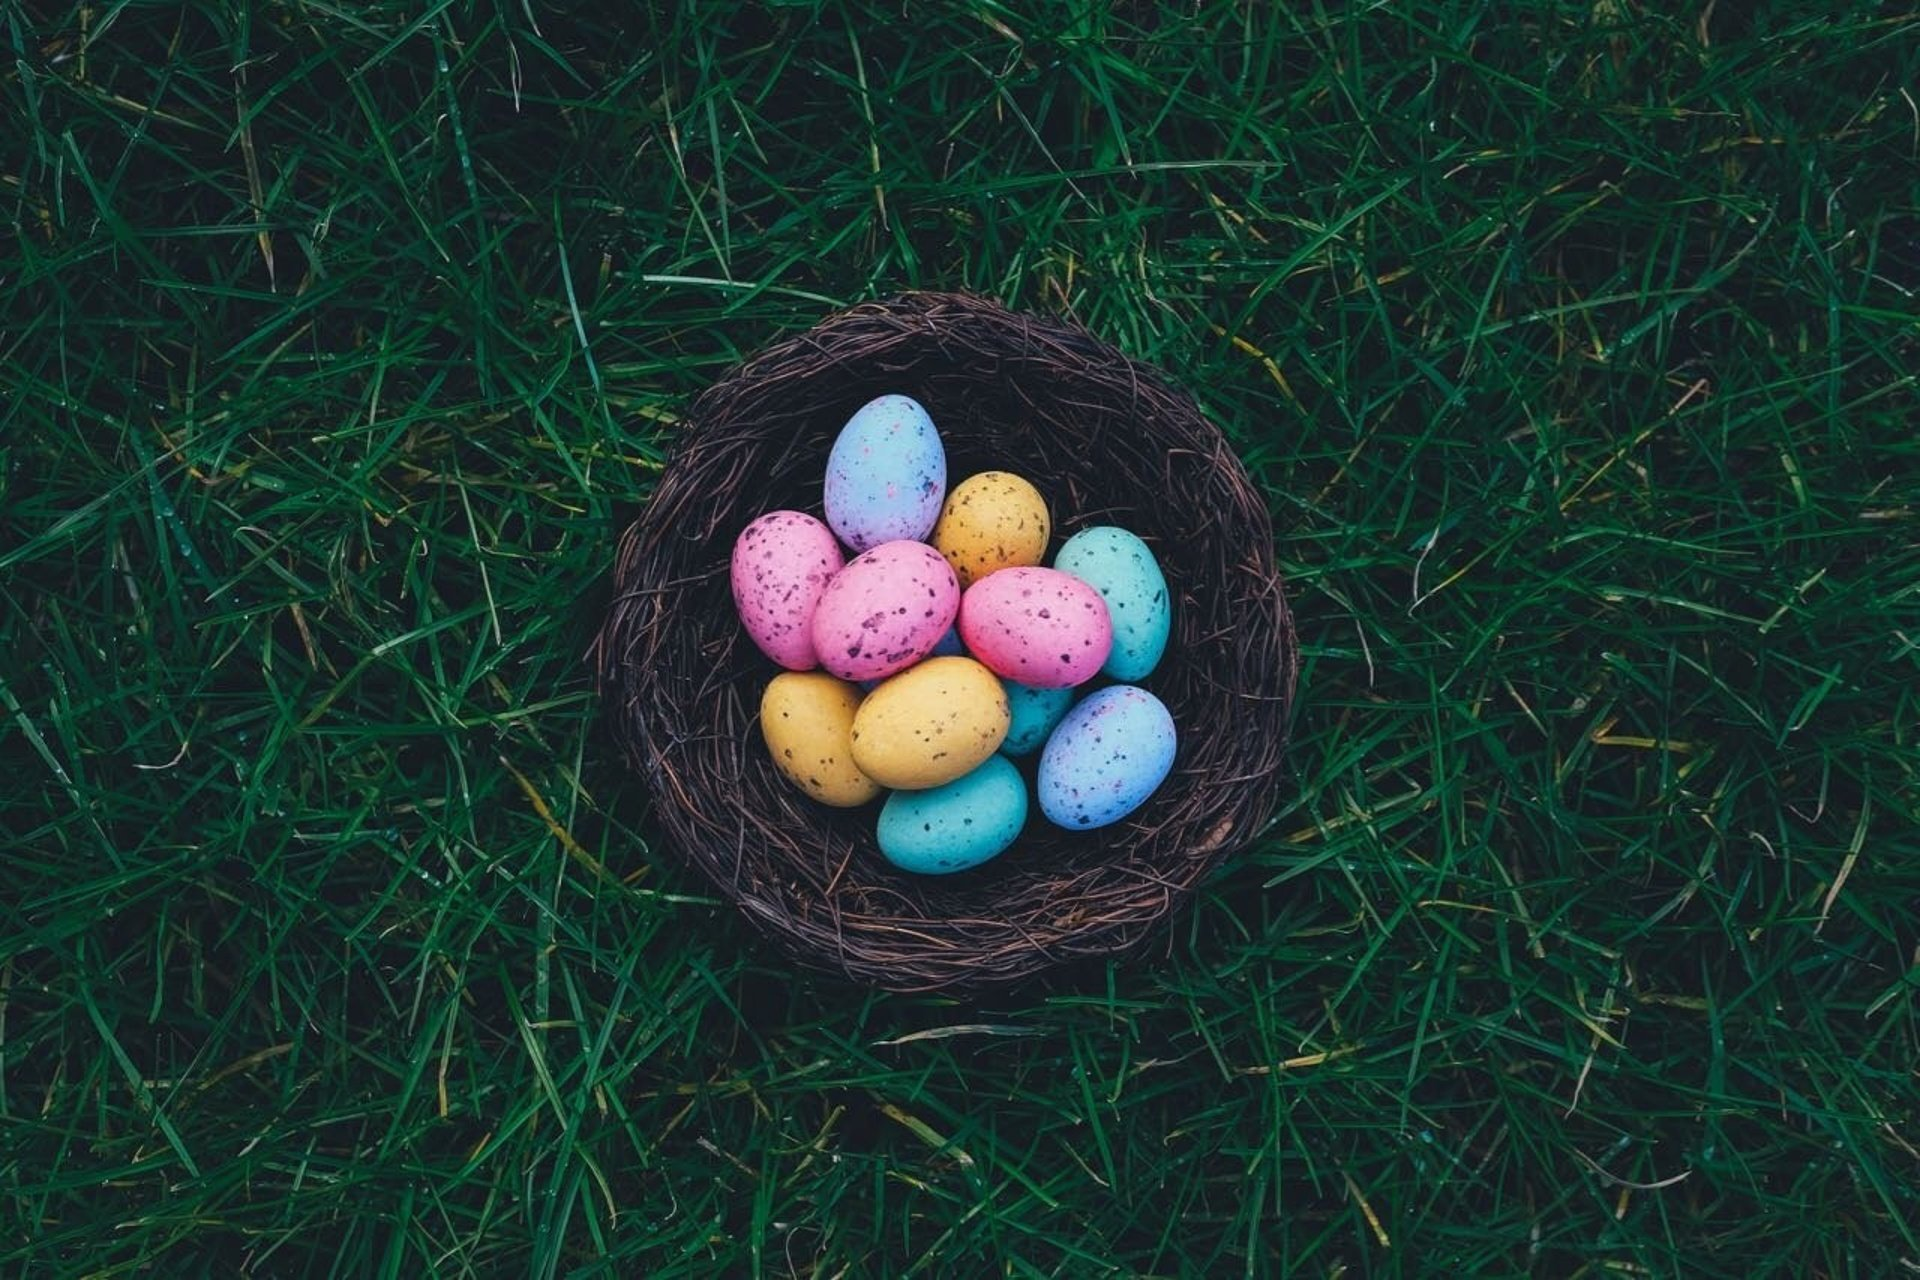 12 Ways To Create An Awesome Easter Online Experience